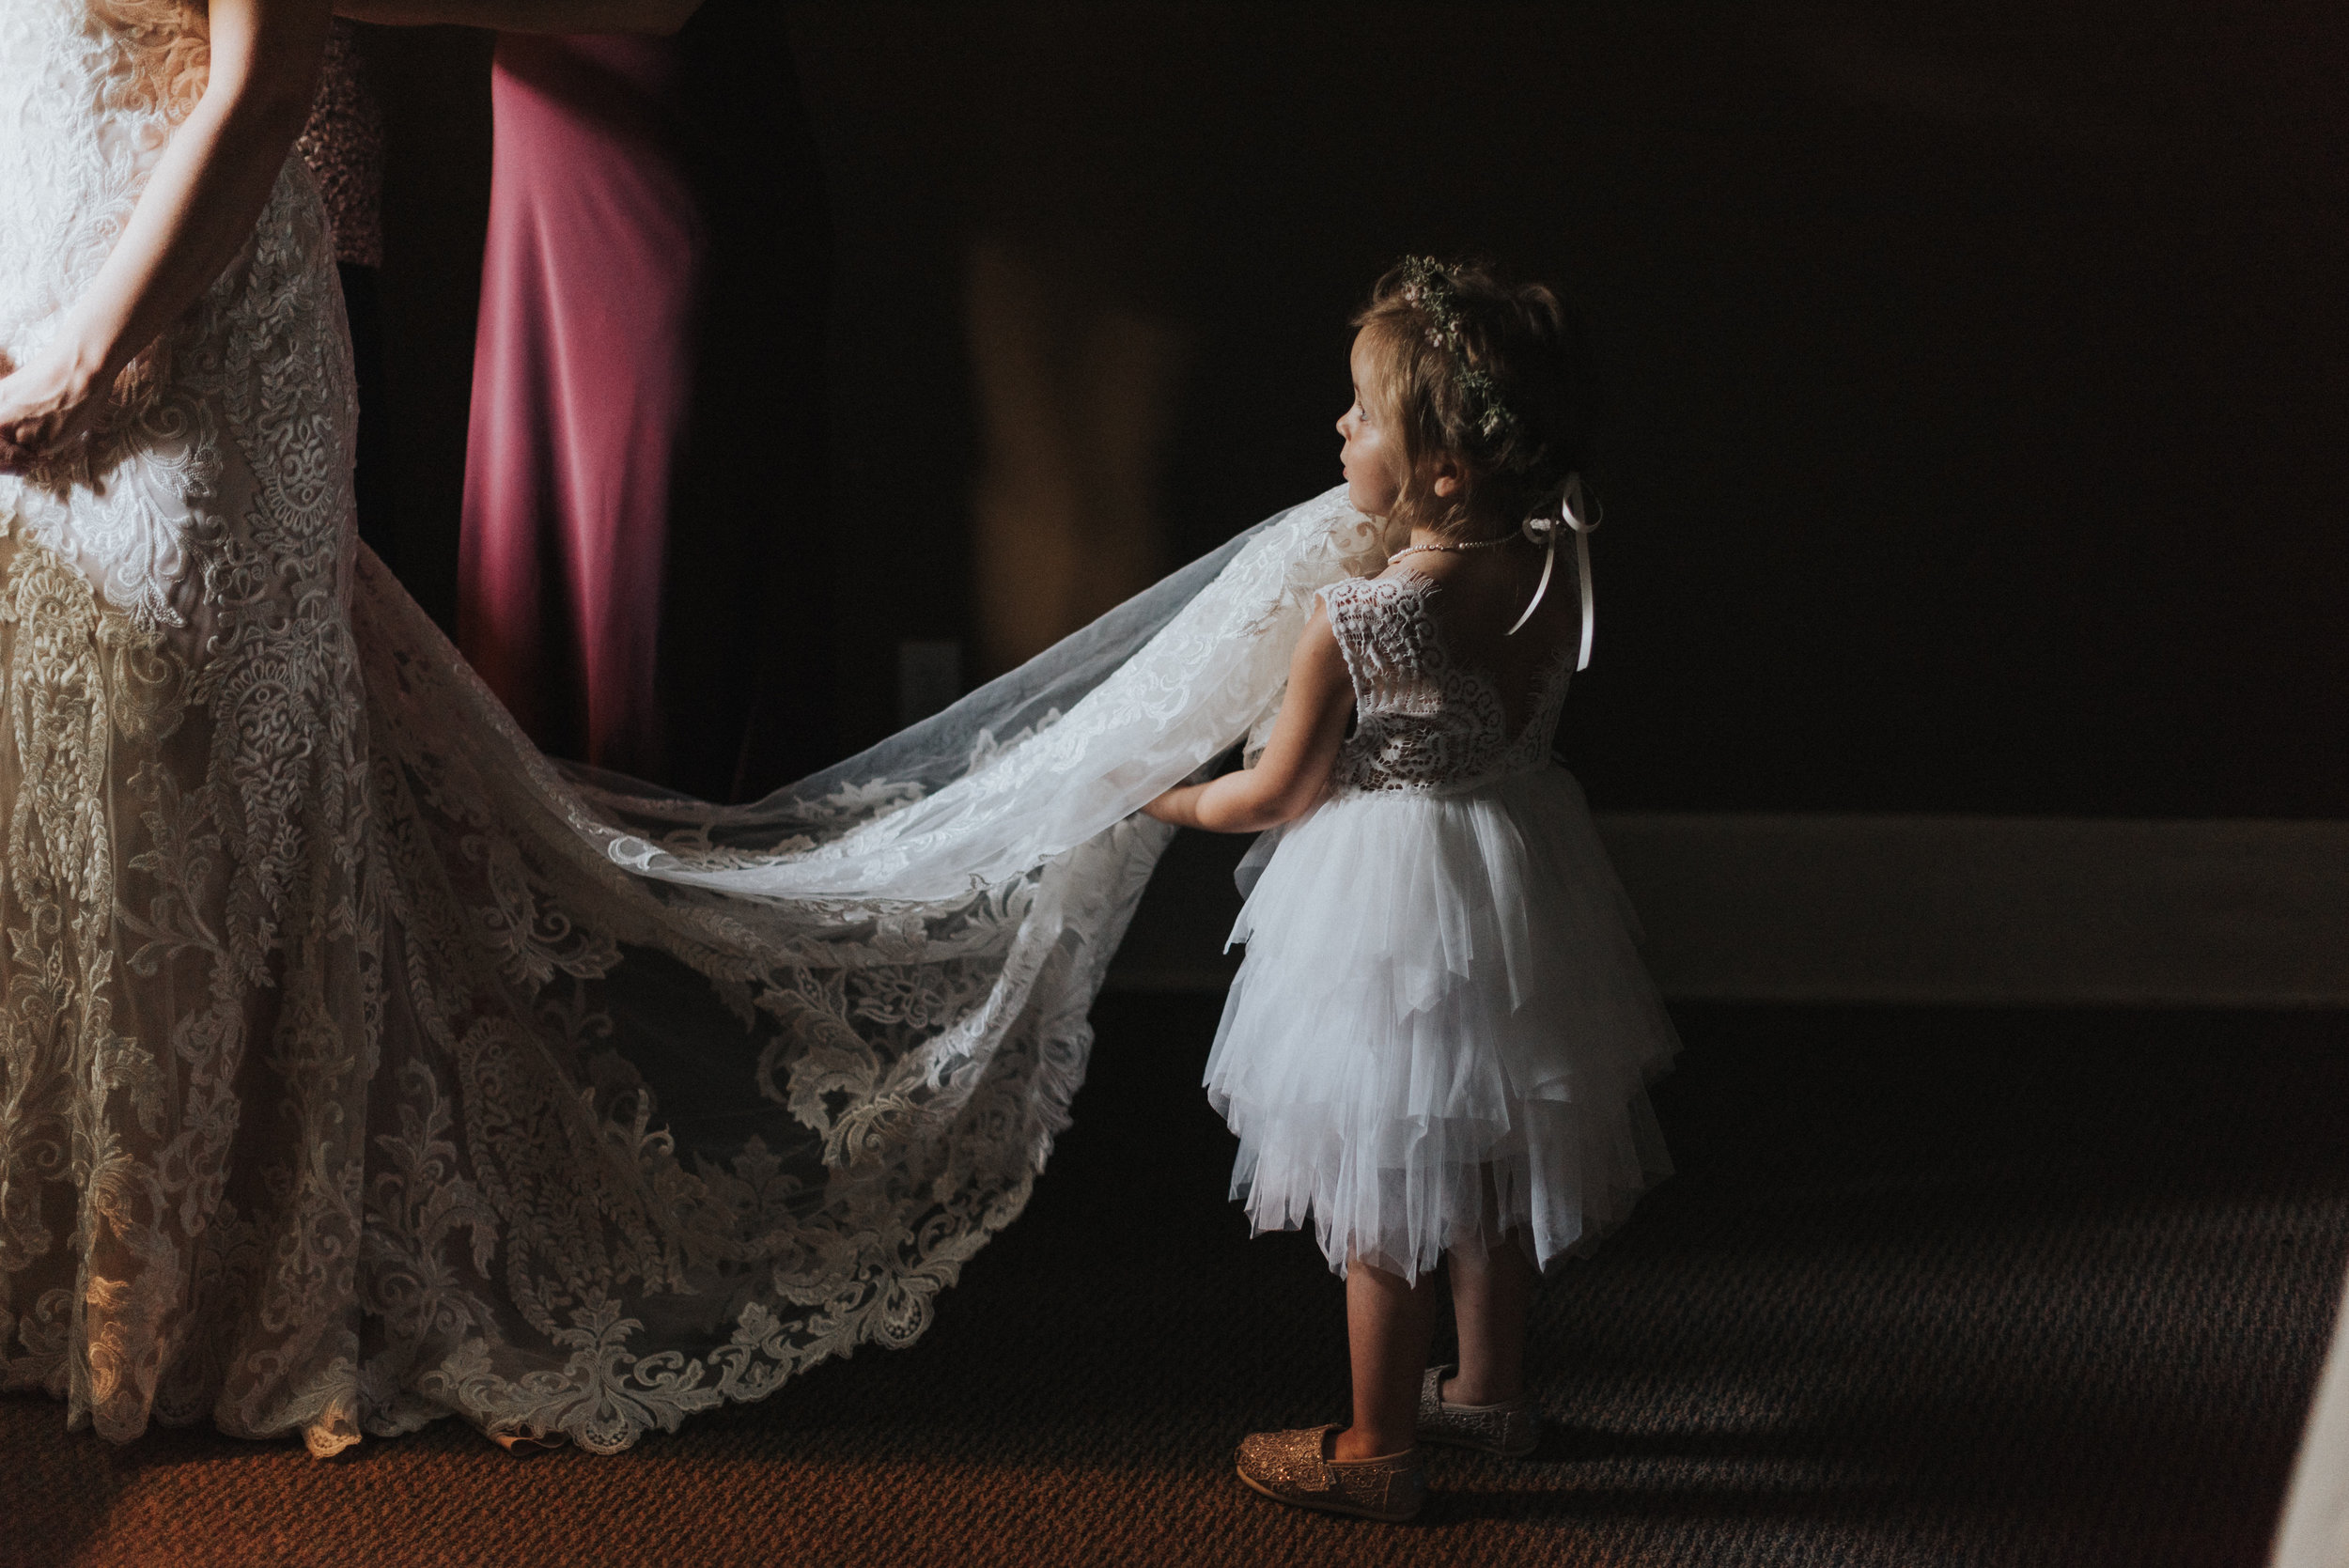 Southern Fete, Southern Wedding, Flower girl posing while holding Bride's dress